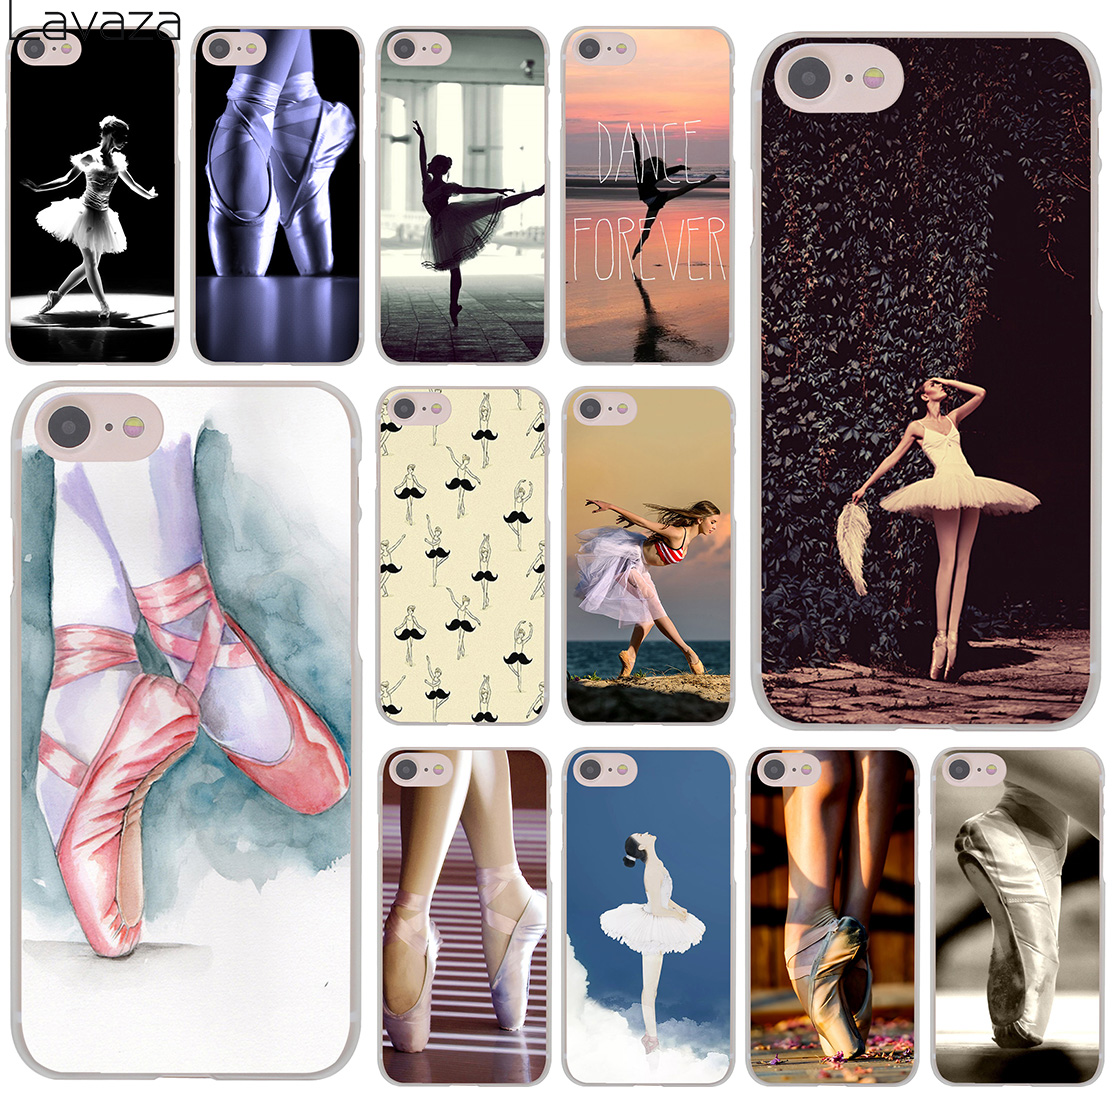 Lavaza Dancing Girl Dance Ballet sneaker Pointe Shoes Hard Phone Case for Apple iPhone X 8 7 6 6S Plus 5 5S SE 5C 4 4S 10 Cover